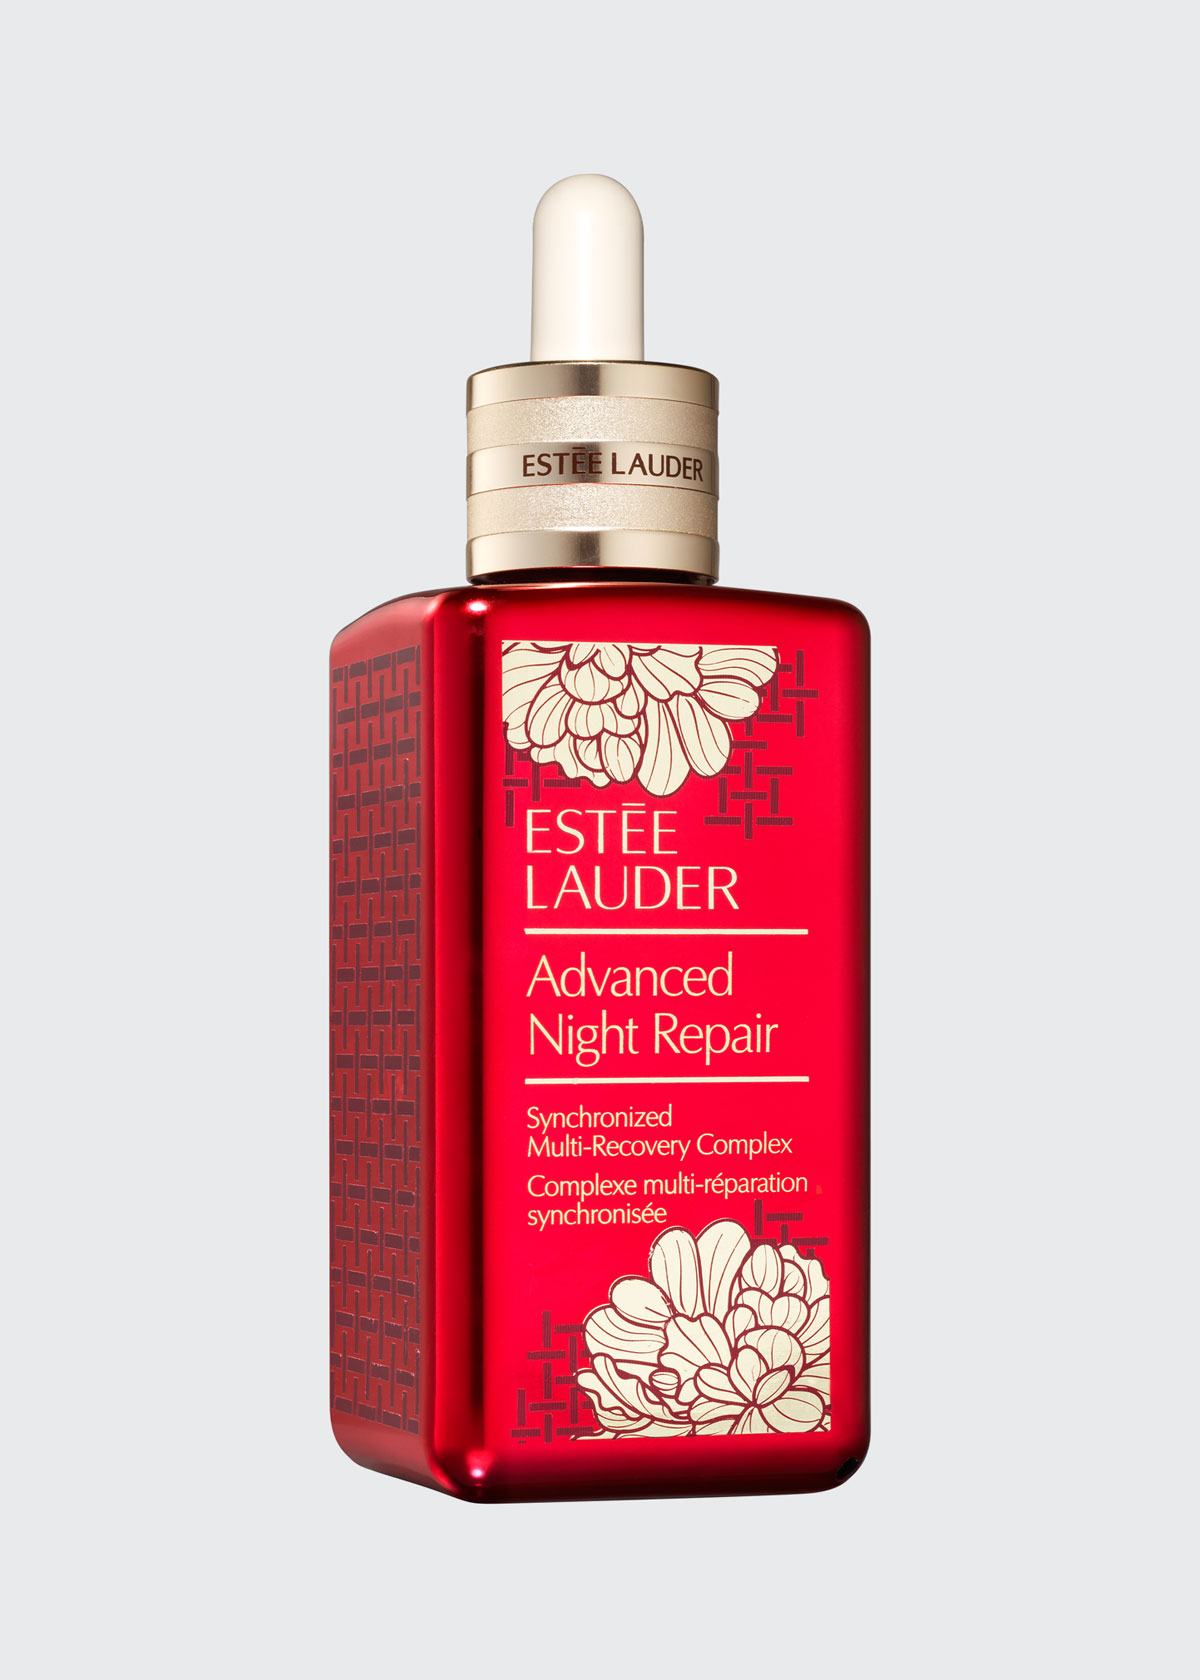 Estée Lauder ADVANCED NIGHT REPAIR SYNCHRONIZED MULTI-RECOVERY COMPLEX IN RED BOTTLE